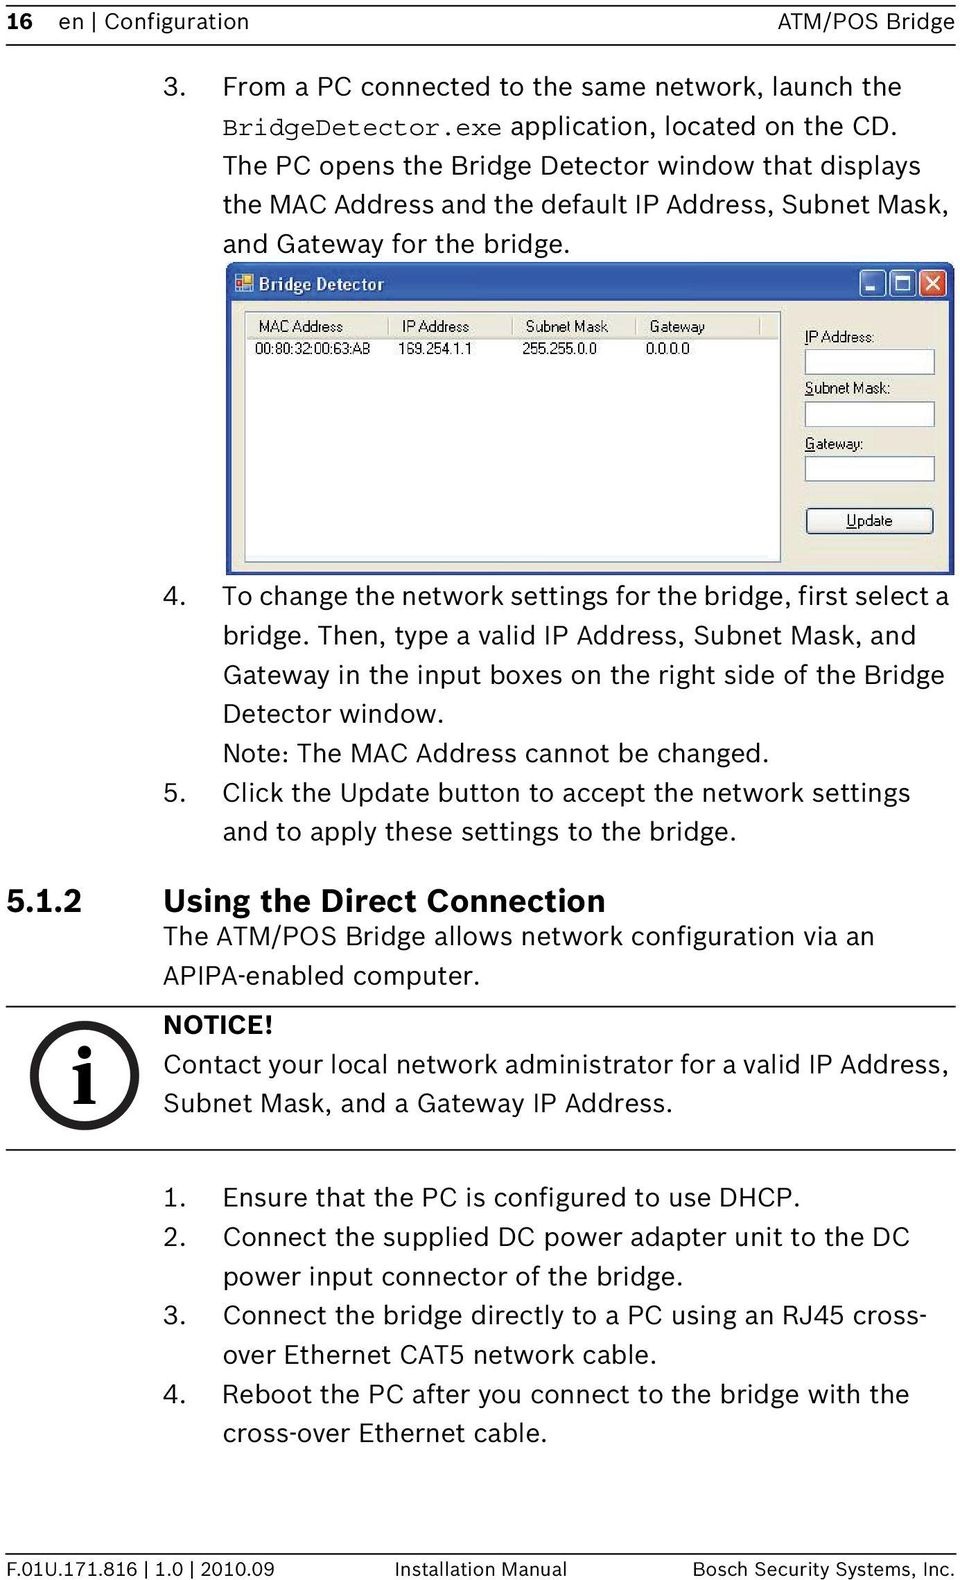 To change the network settings for the bridge, first select a bridge. Then, type a valid IP Address, Subnet Mask, and Gateway in the input boxes on the right side of the Bridge Detector window.